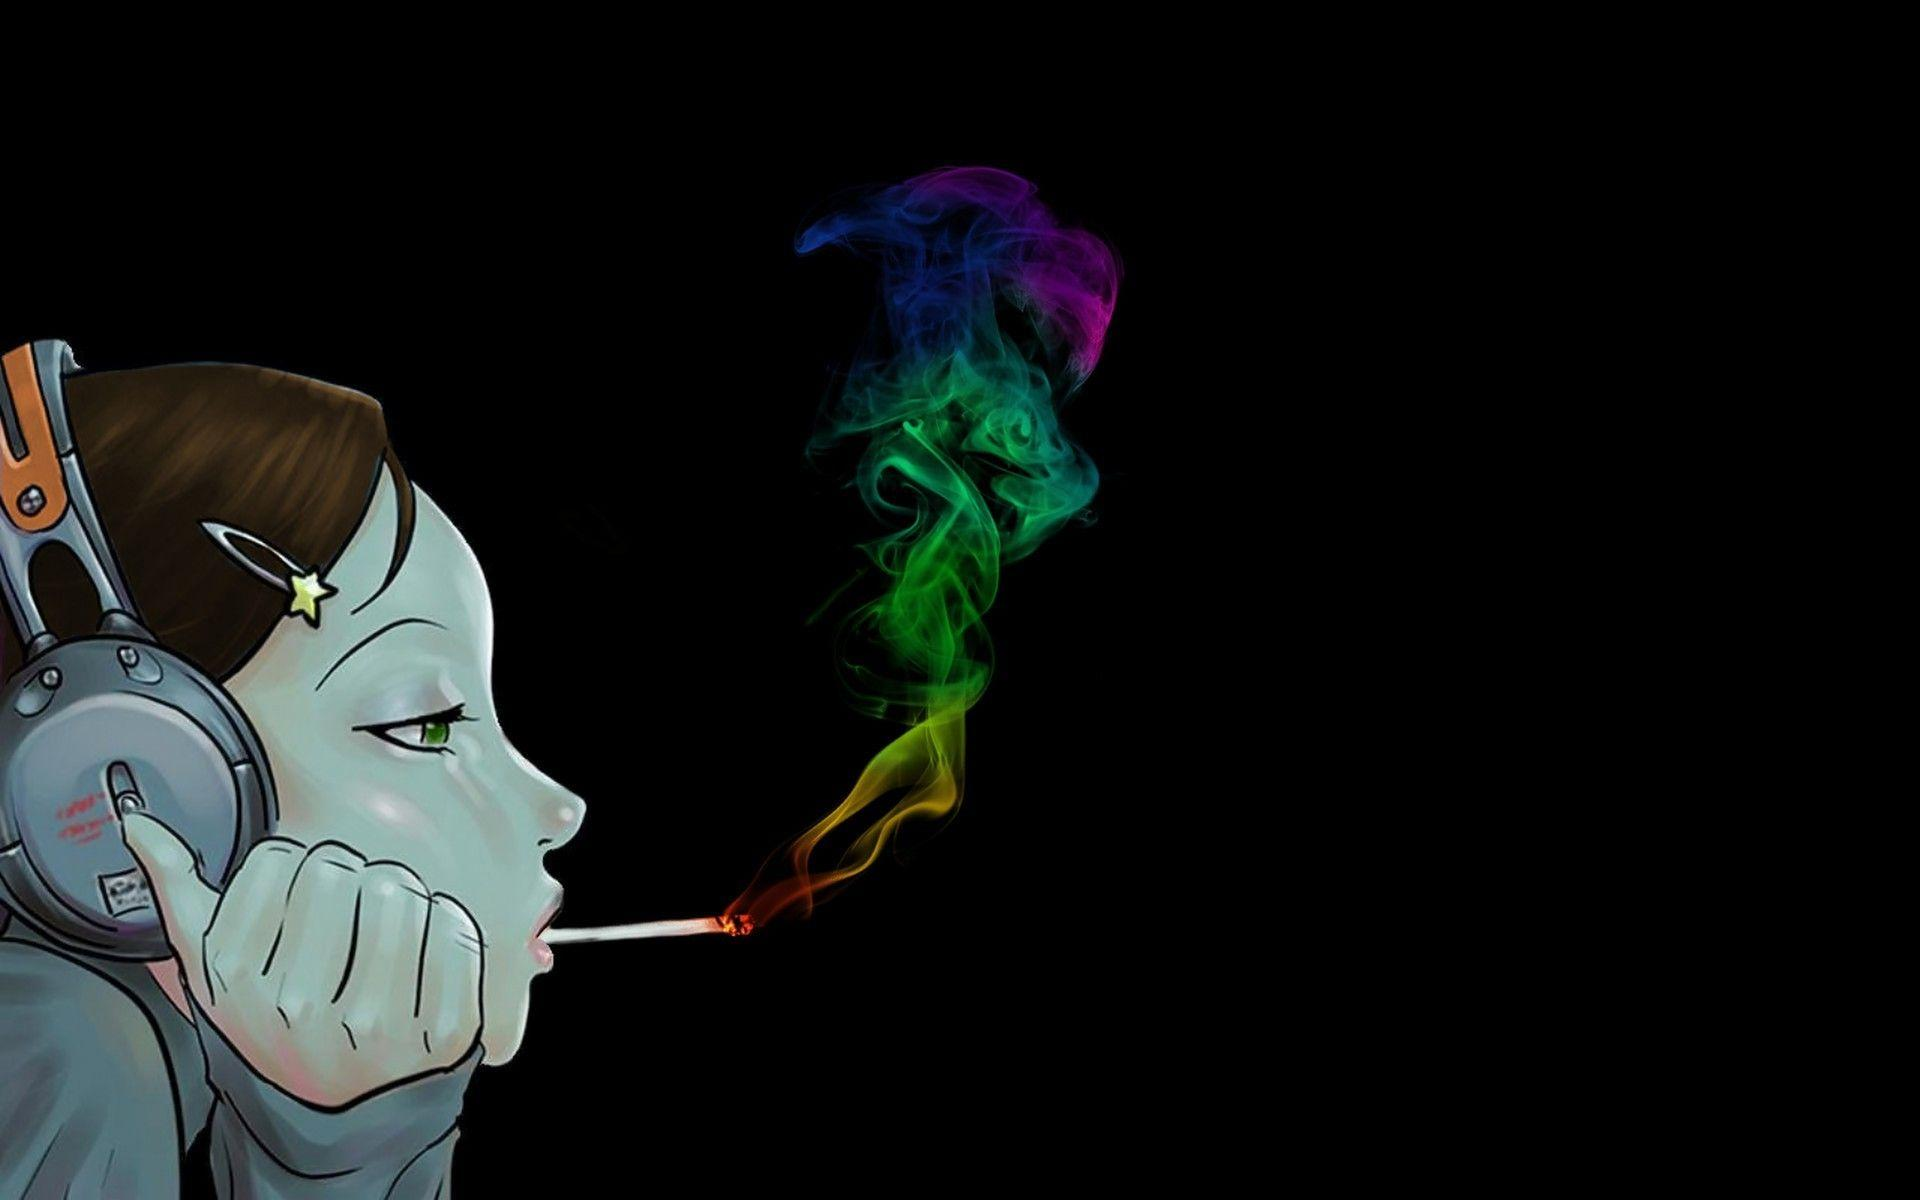 Anime Smoking Weed Wallpapers Wallpaper Cave